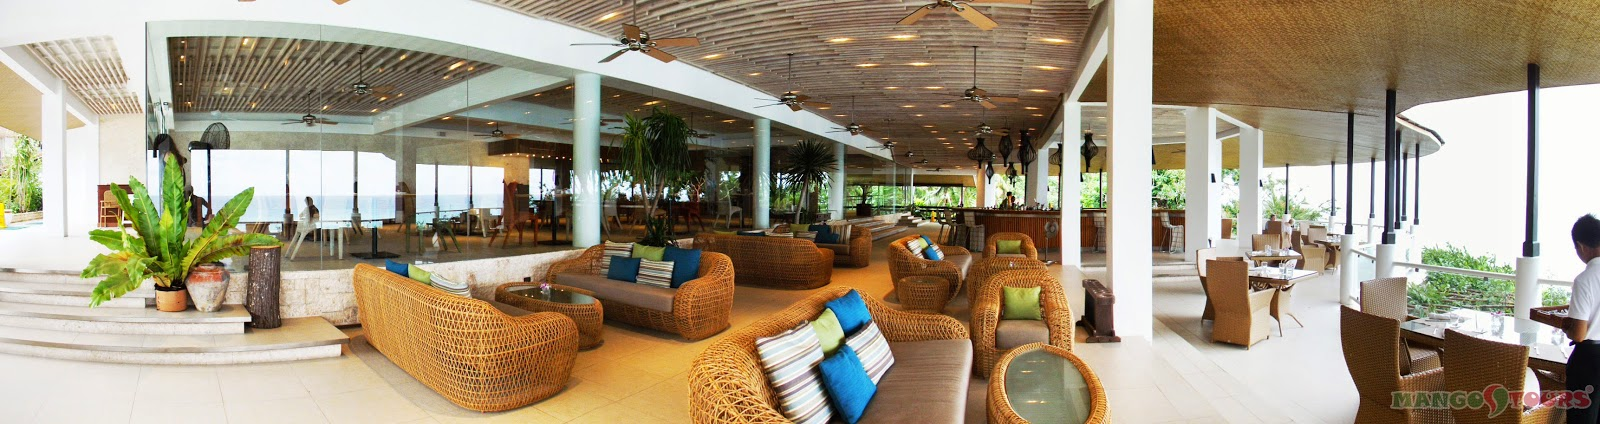 Mango Tours Philippines Alegre Beach Resort & Spa Restaurant The Pavilion